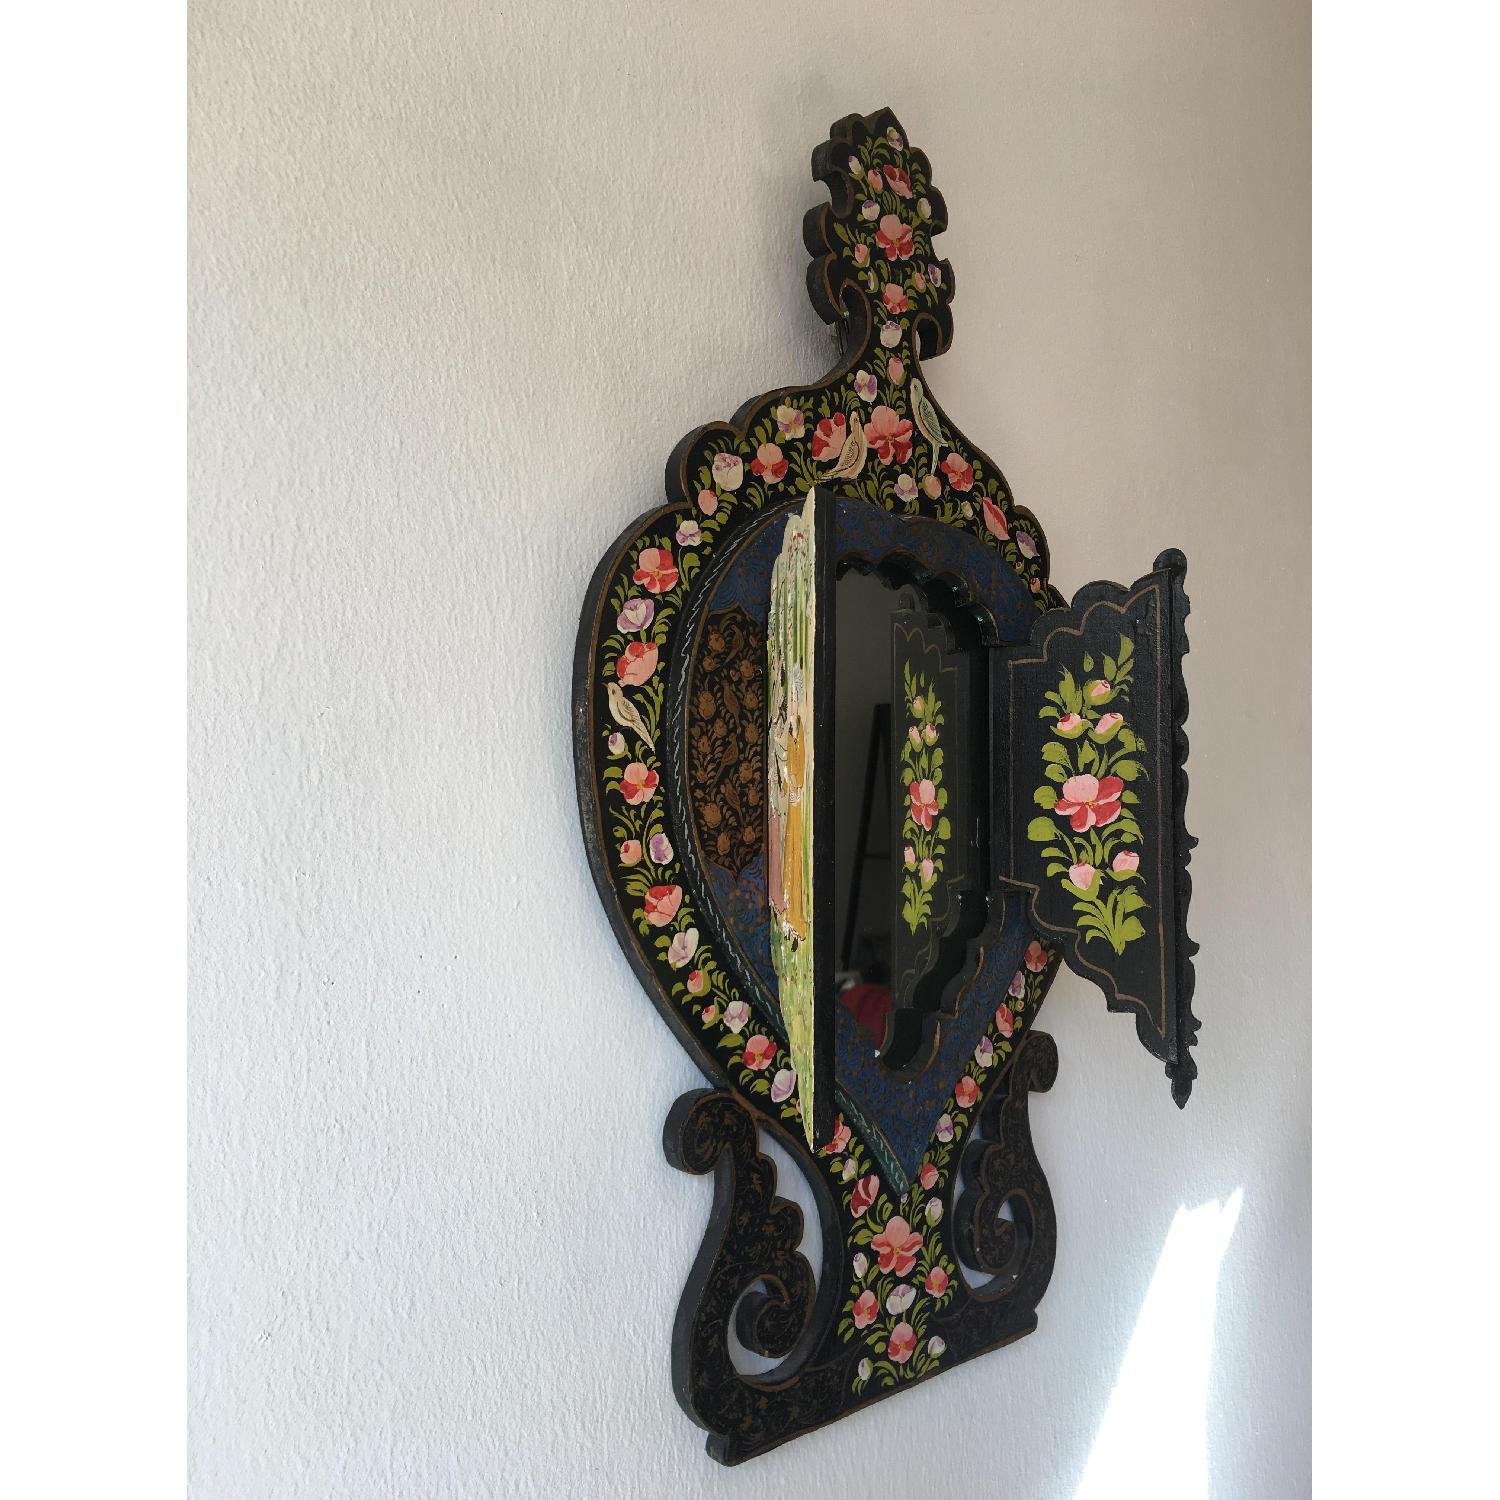 Antique Small Hand Painted Wooden Persian Mirror Frame - image-8